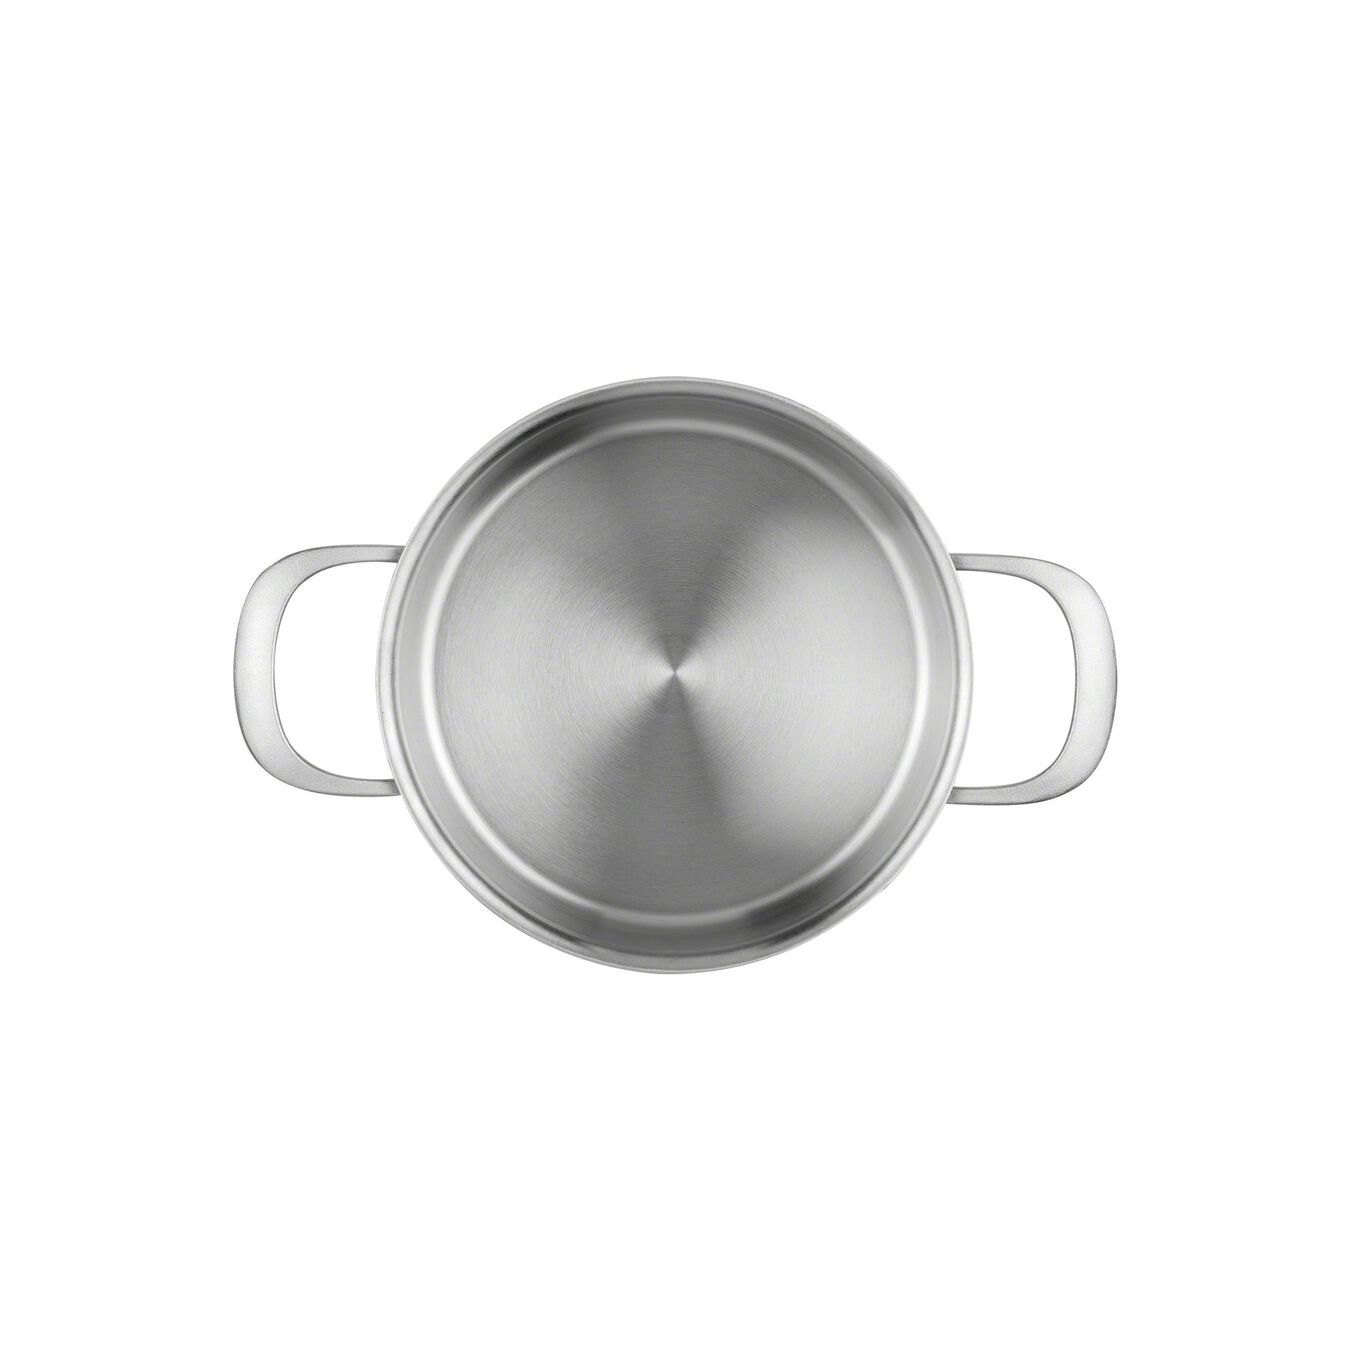 7.5 l 18/10 Stainless Steel Stock pot,,large 2